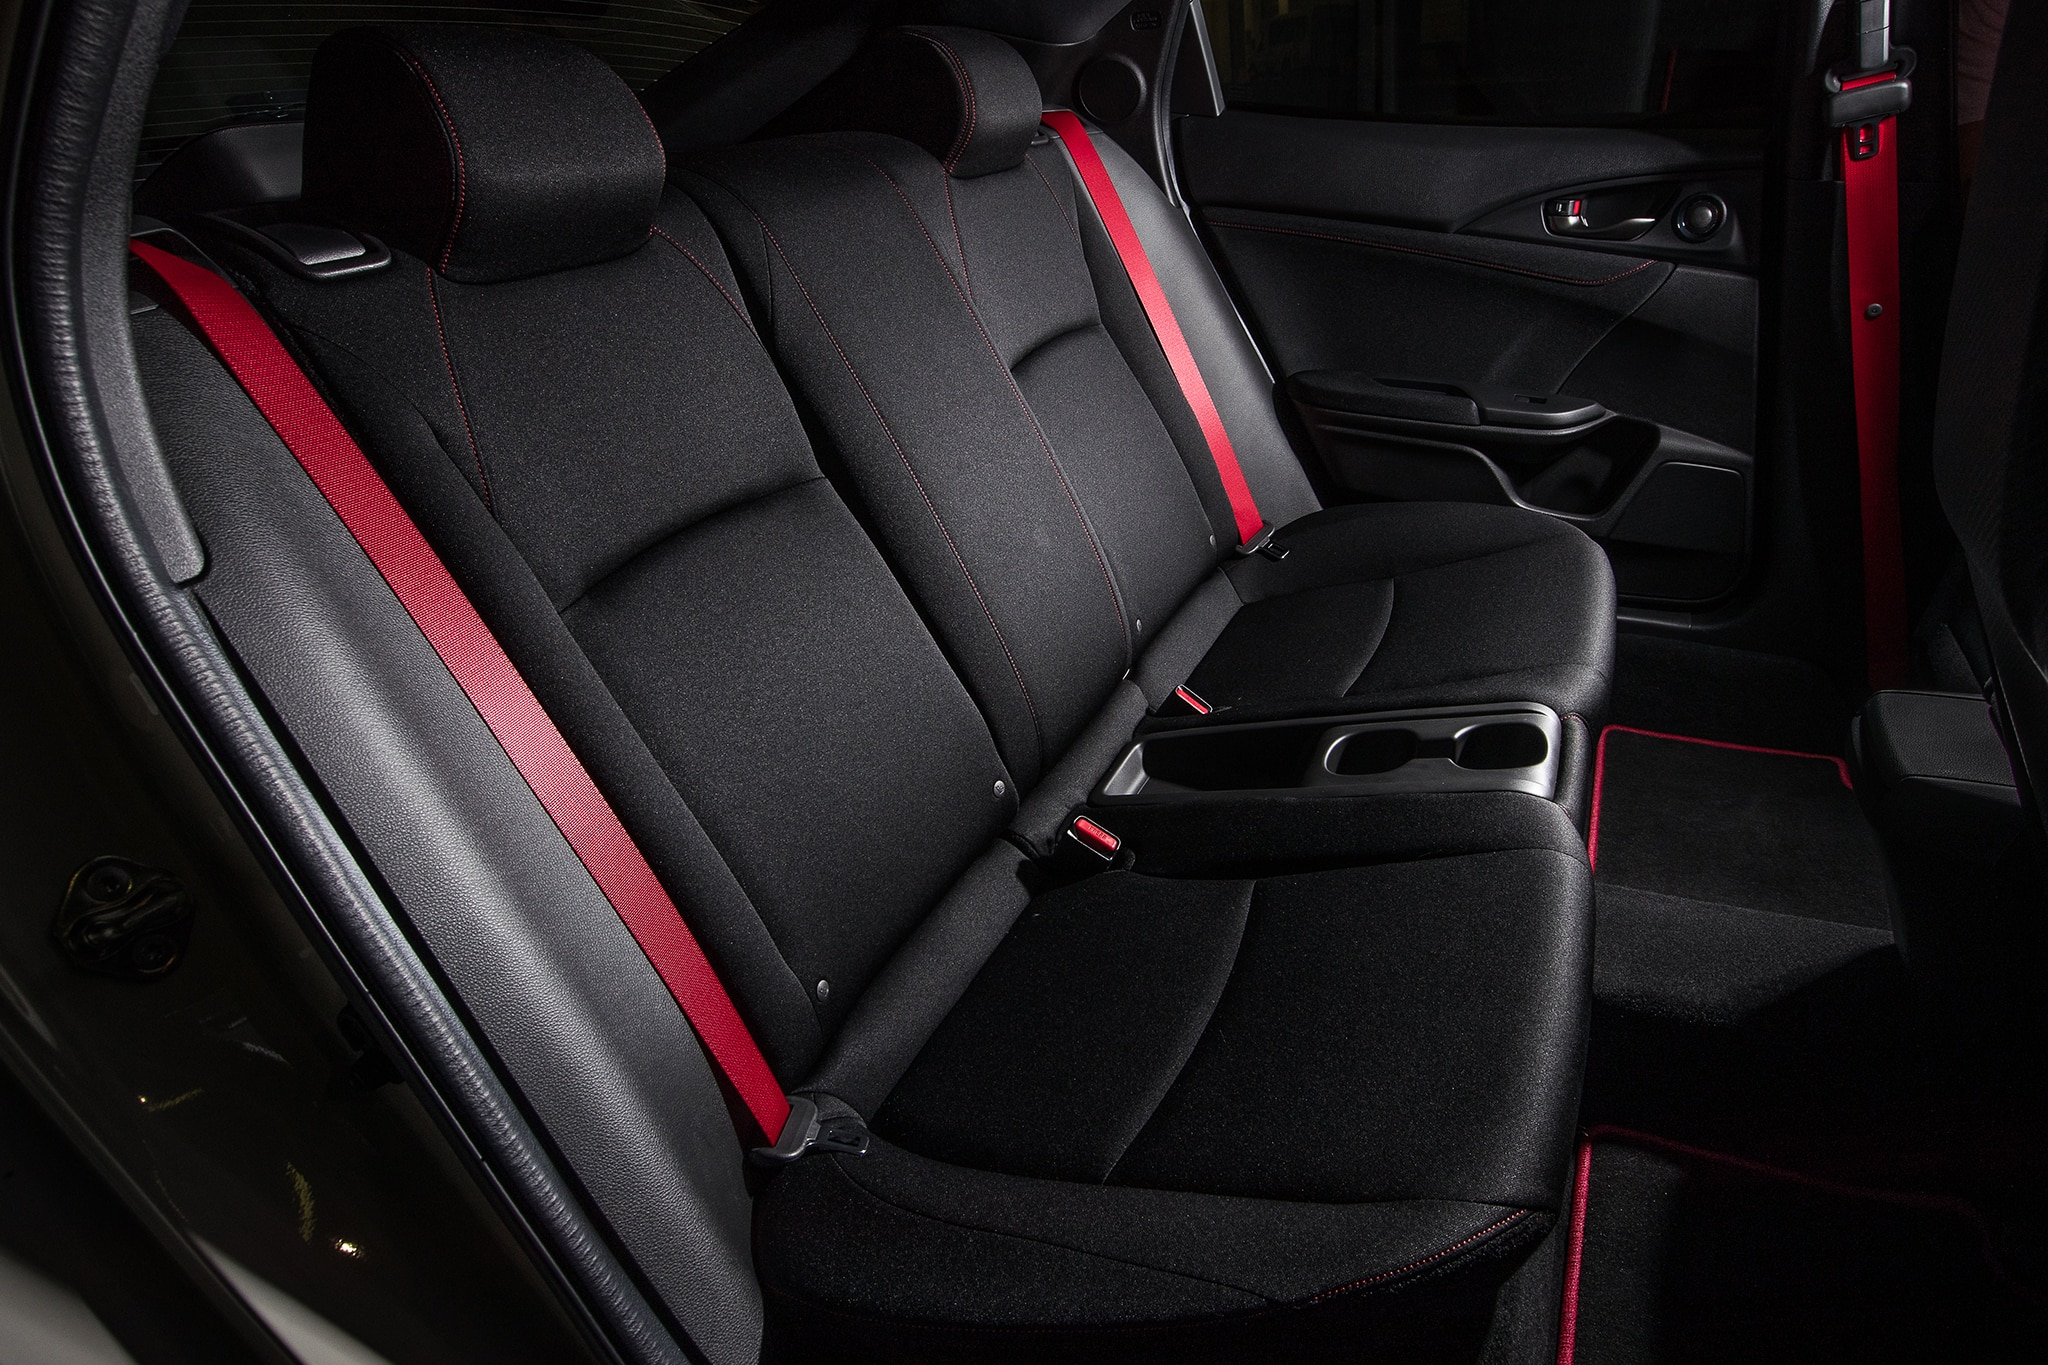 Honda Civic Type R Rear Seat on Honda Civic Magazine